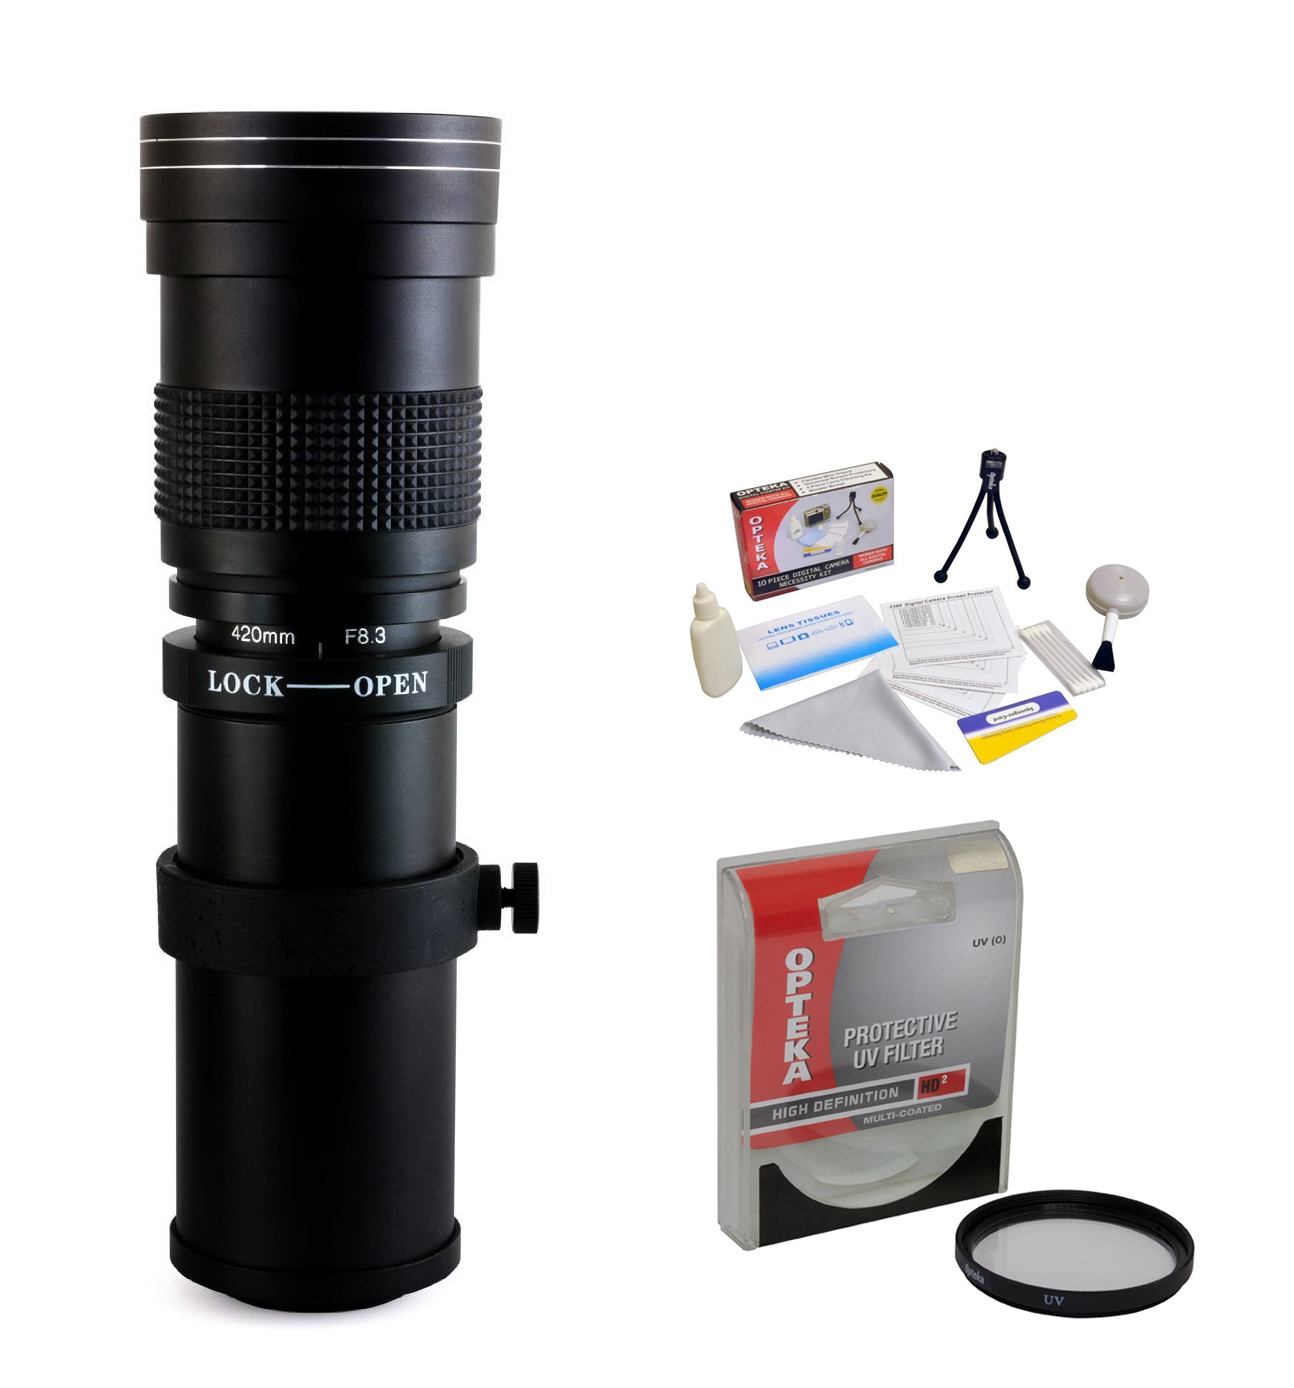 Opteka 420-800mm f/8.3 HD Telephoto Zoom Lens with UV Filter for Nikon 1 J4, J3, J2, S2, S1, V3, V2, V1 and AW1 Compact